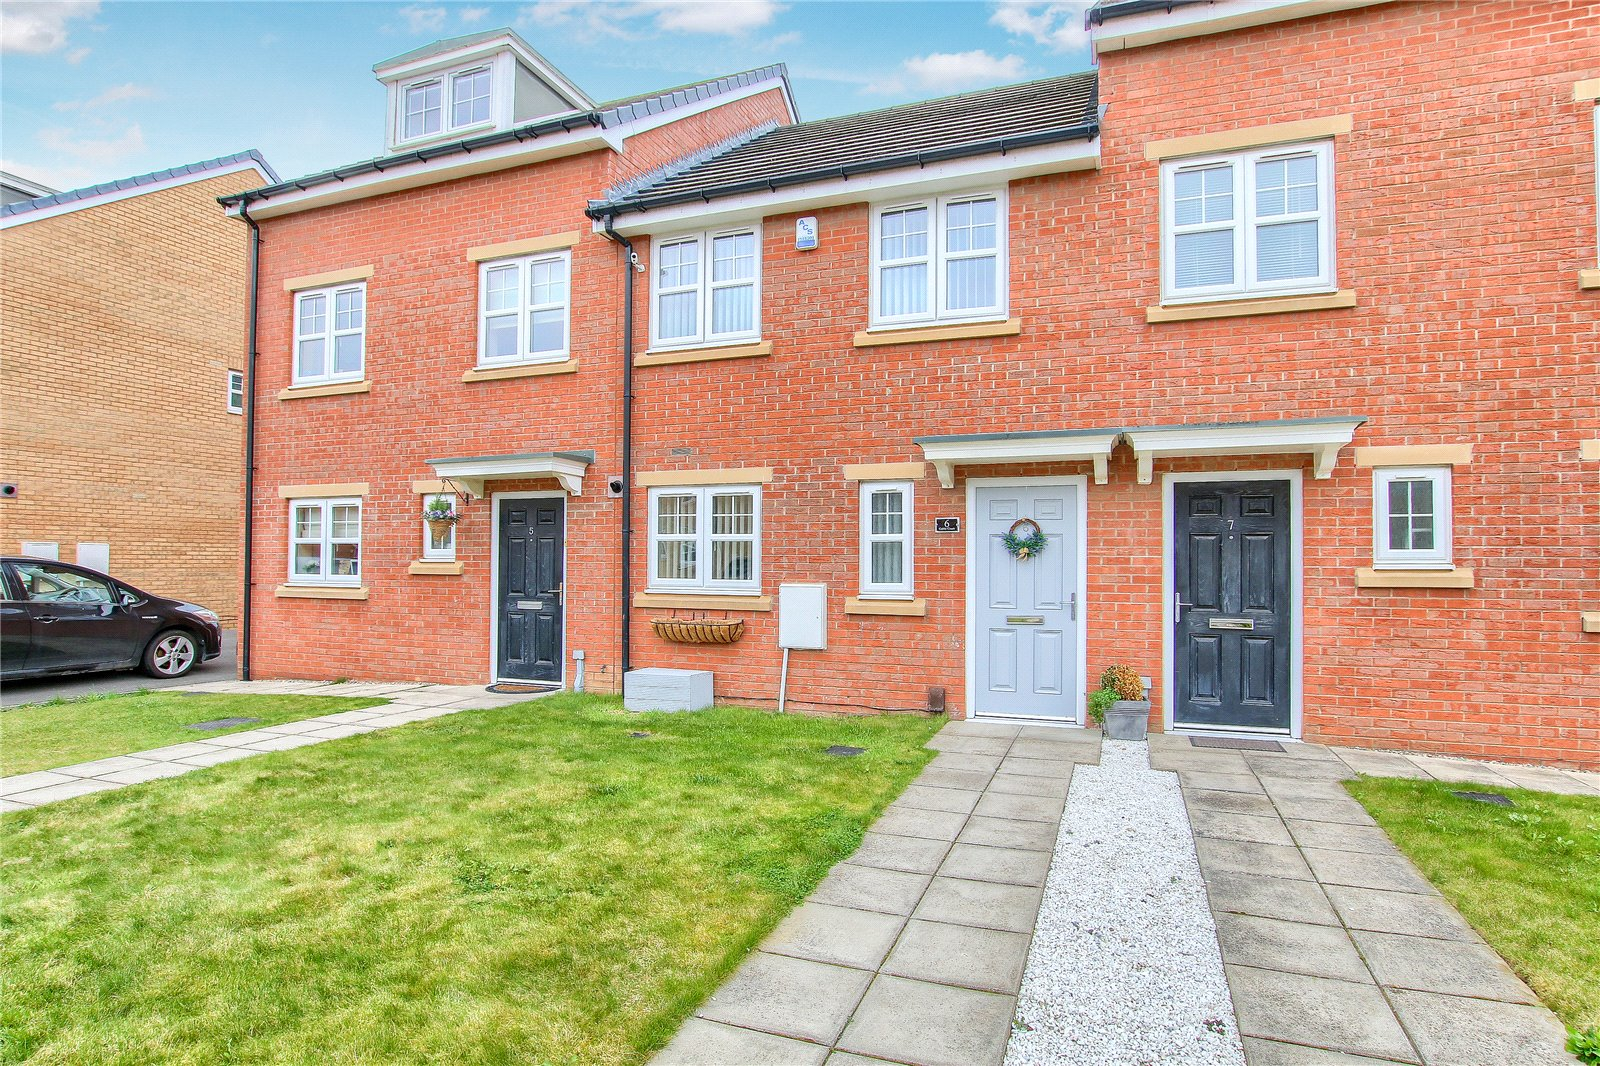 3 bed house for sale in Gable Court, Thornaby 1